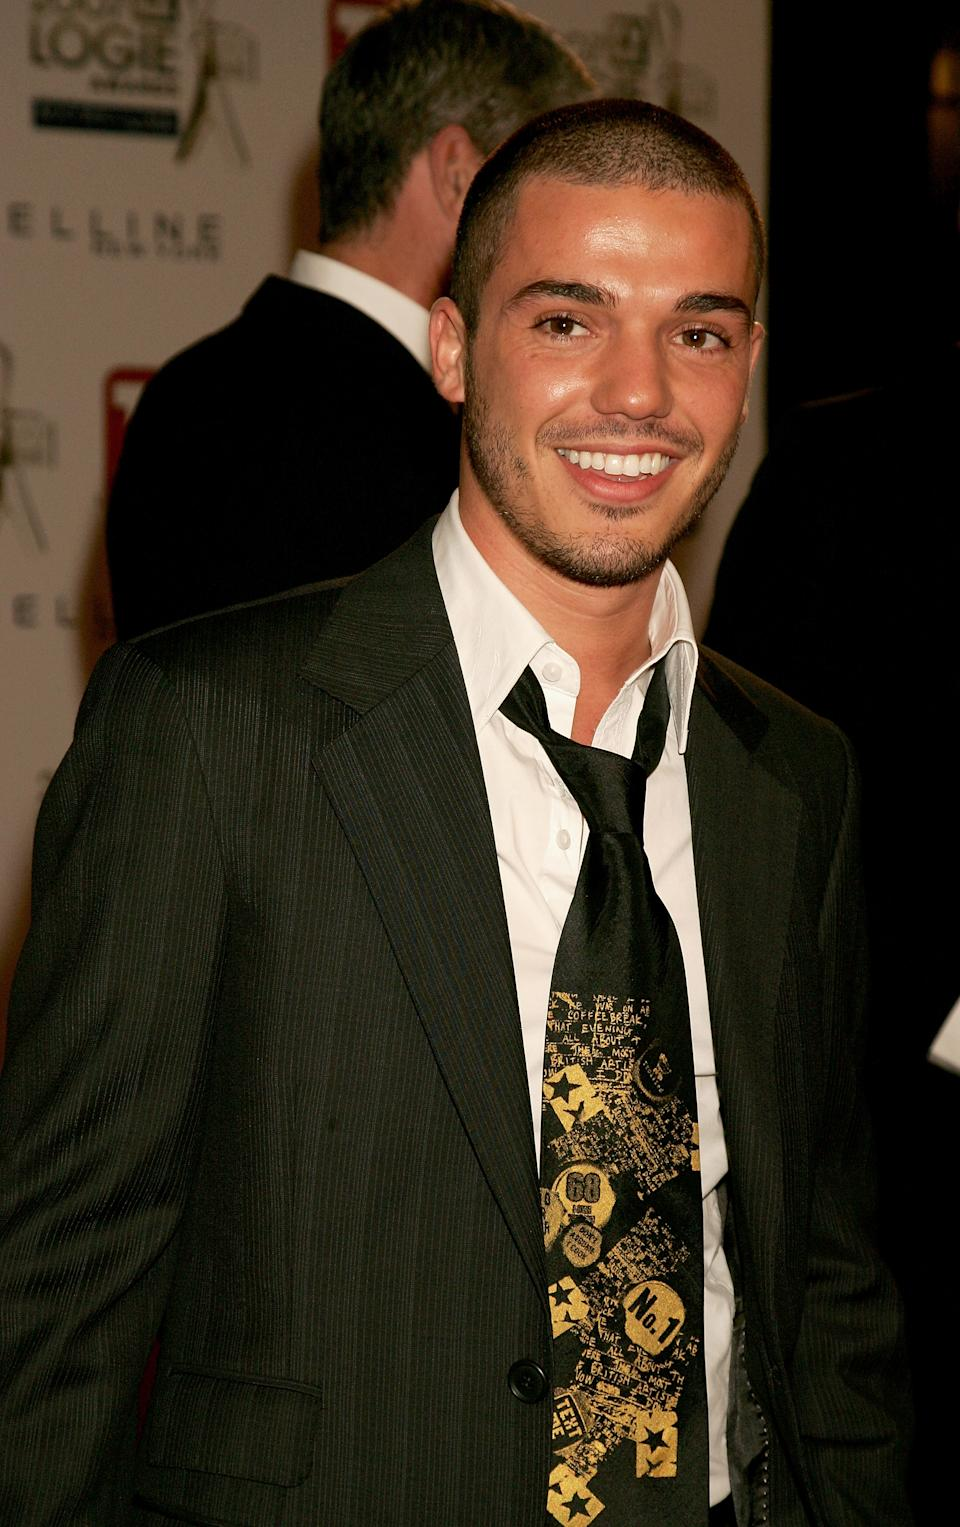 Singer Anthony Callea arrives at the 2007 TV Week Logie Awards at the Crown Casino on May 6, 2007 in Melbourne, Australia